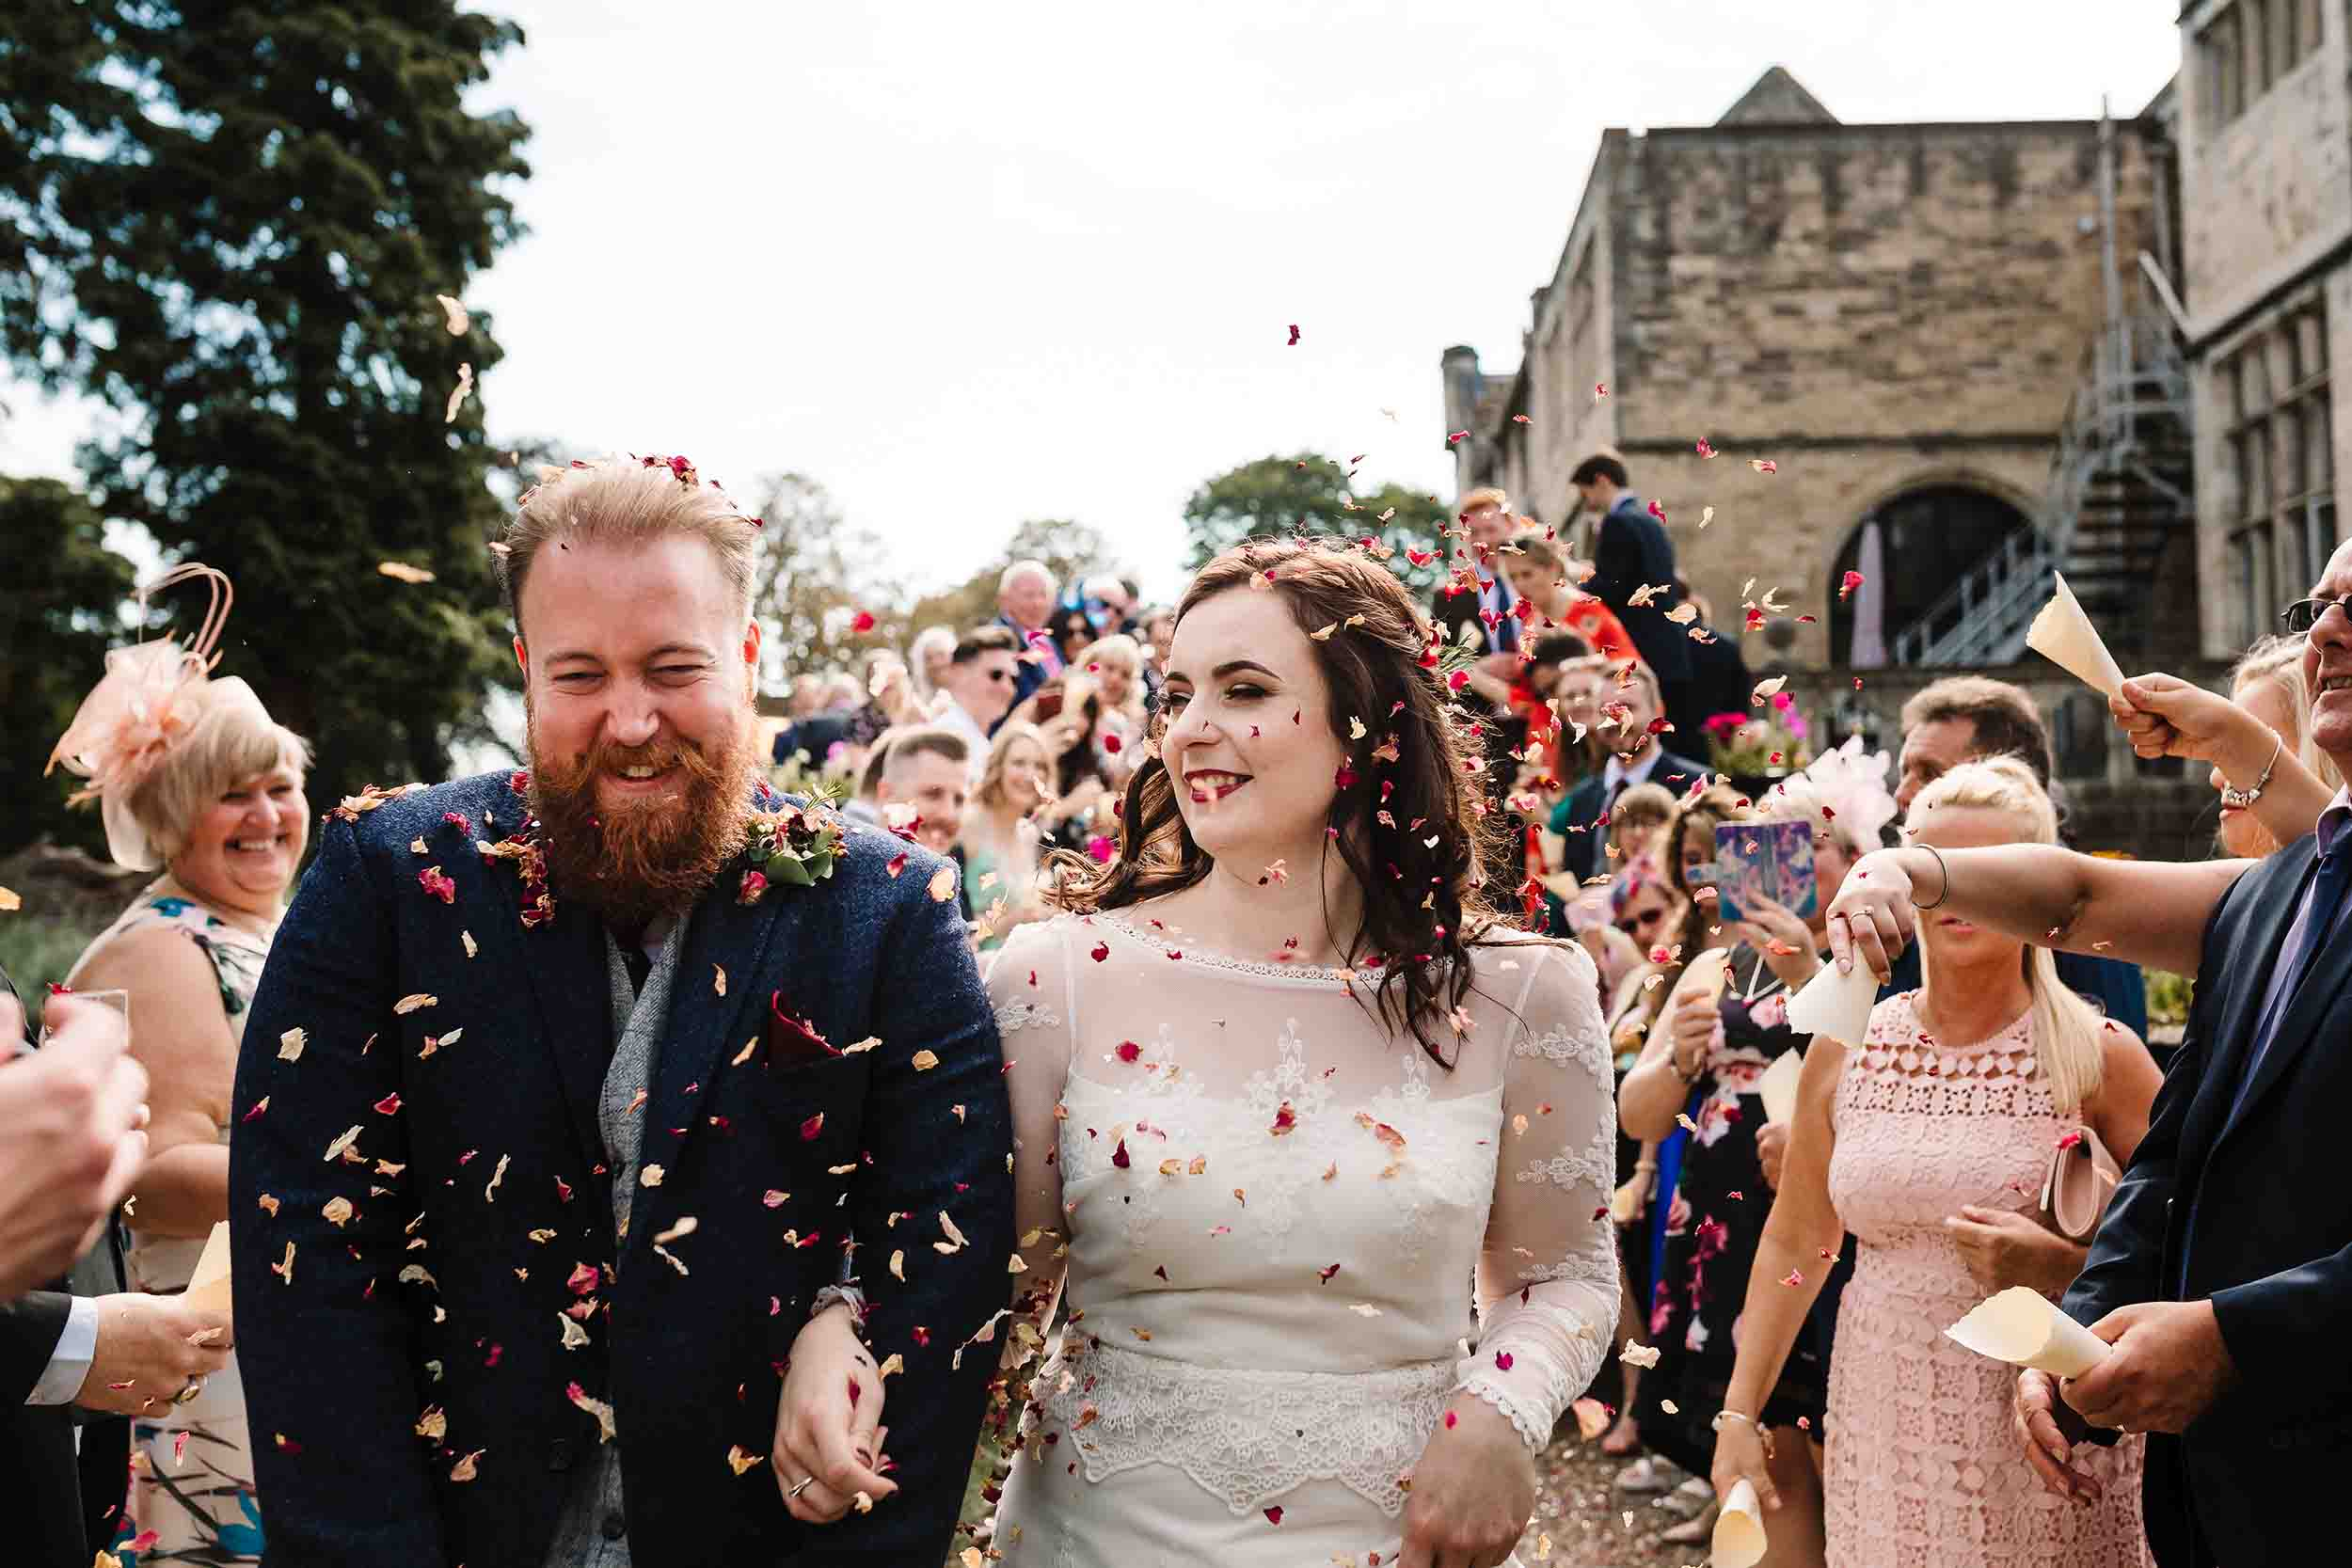 wedding guests throwing confetti over a bride and groom